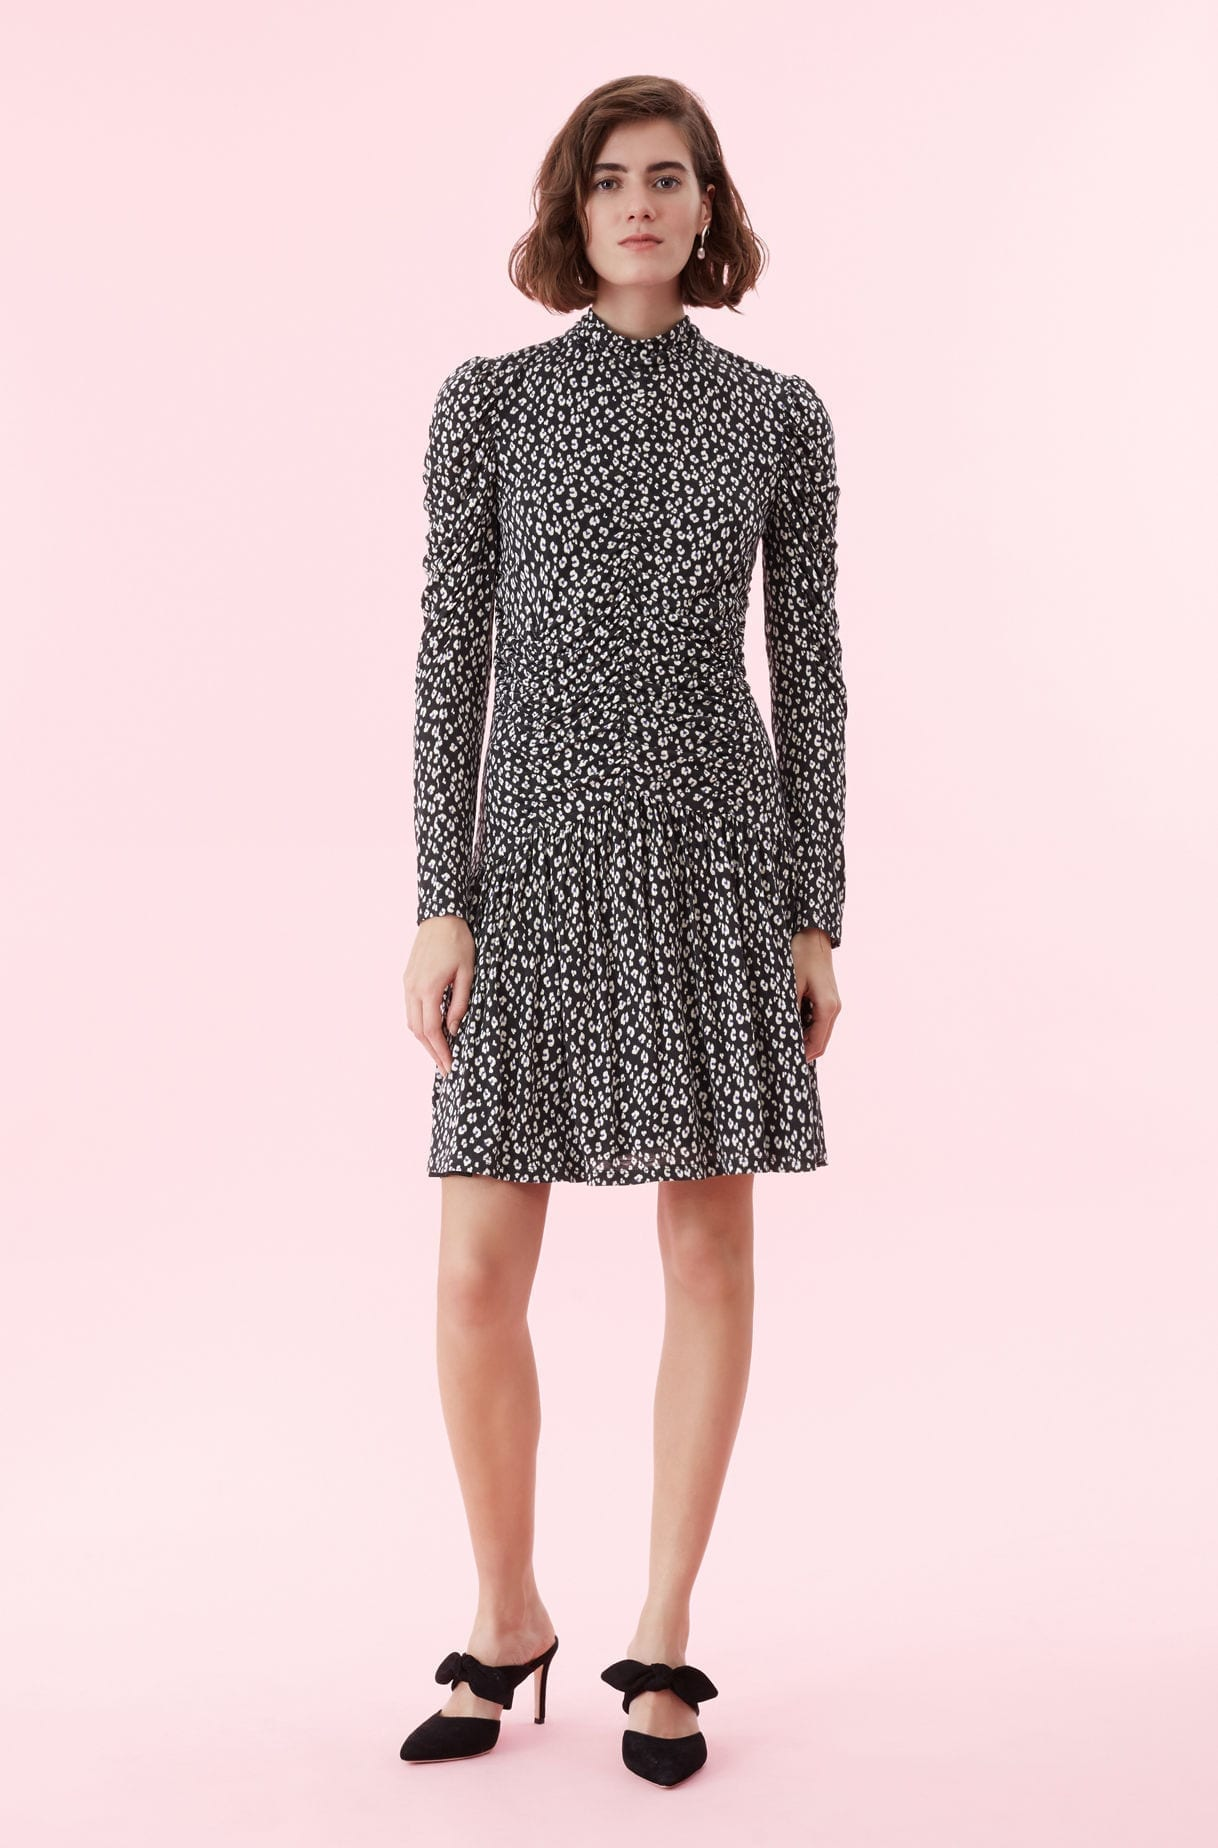 REBECCA TAYLOR Mini Cheetah Jersey Black Dress